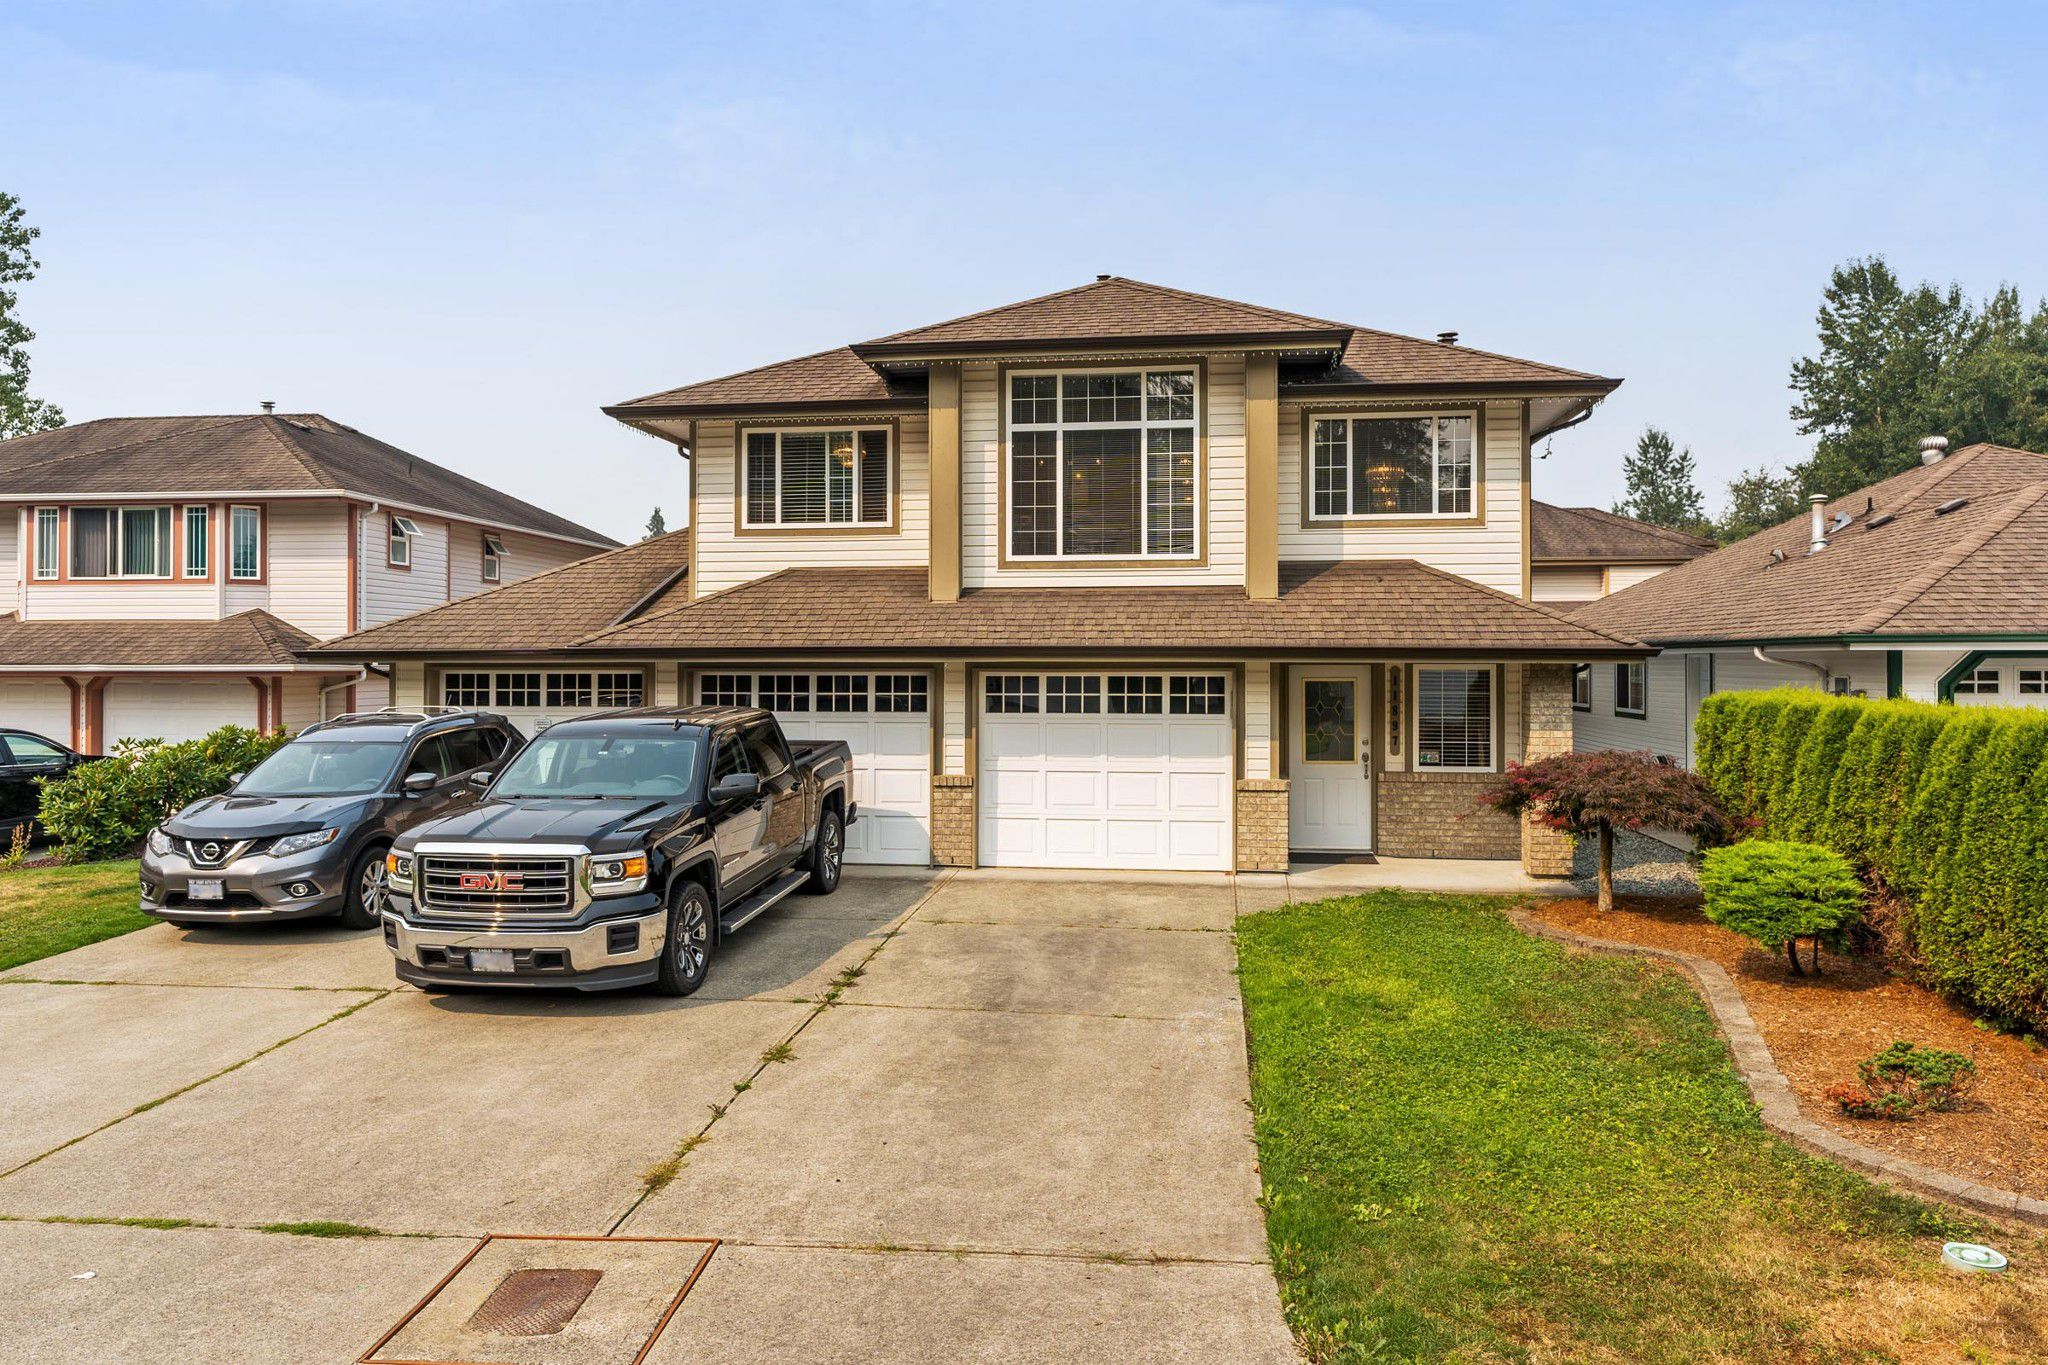 Main Photo: 11897 237 Street in Maple Ridge: Cottonwood MR House for sale : MLS®# R2299974